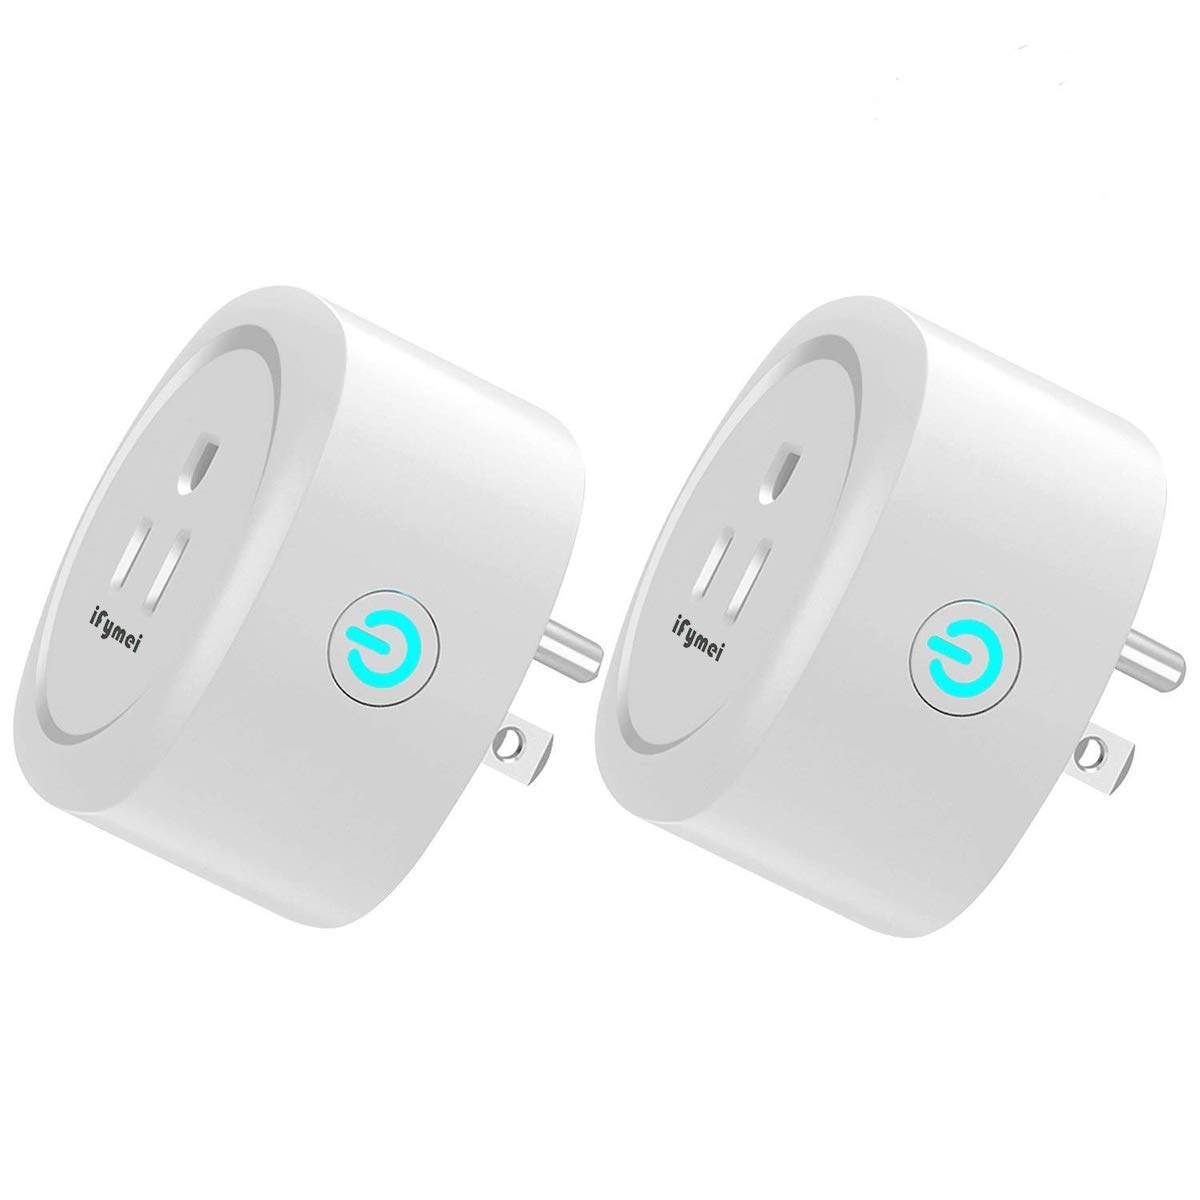 iFymei Smart Plug Mini Wi-Fi Enabled Outlet with Energy Monitoring Compatible with Amazon Alexa & Google Assistant Remote Control Your Devices from Anywhere (White-2)